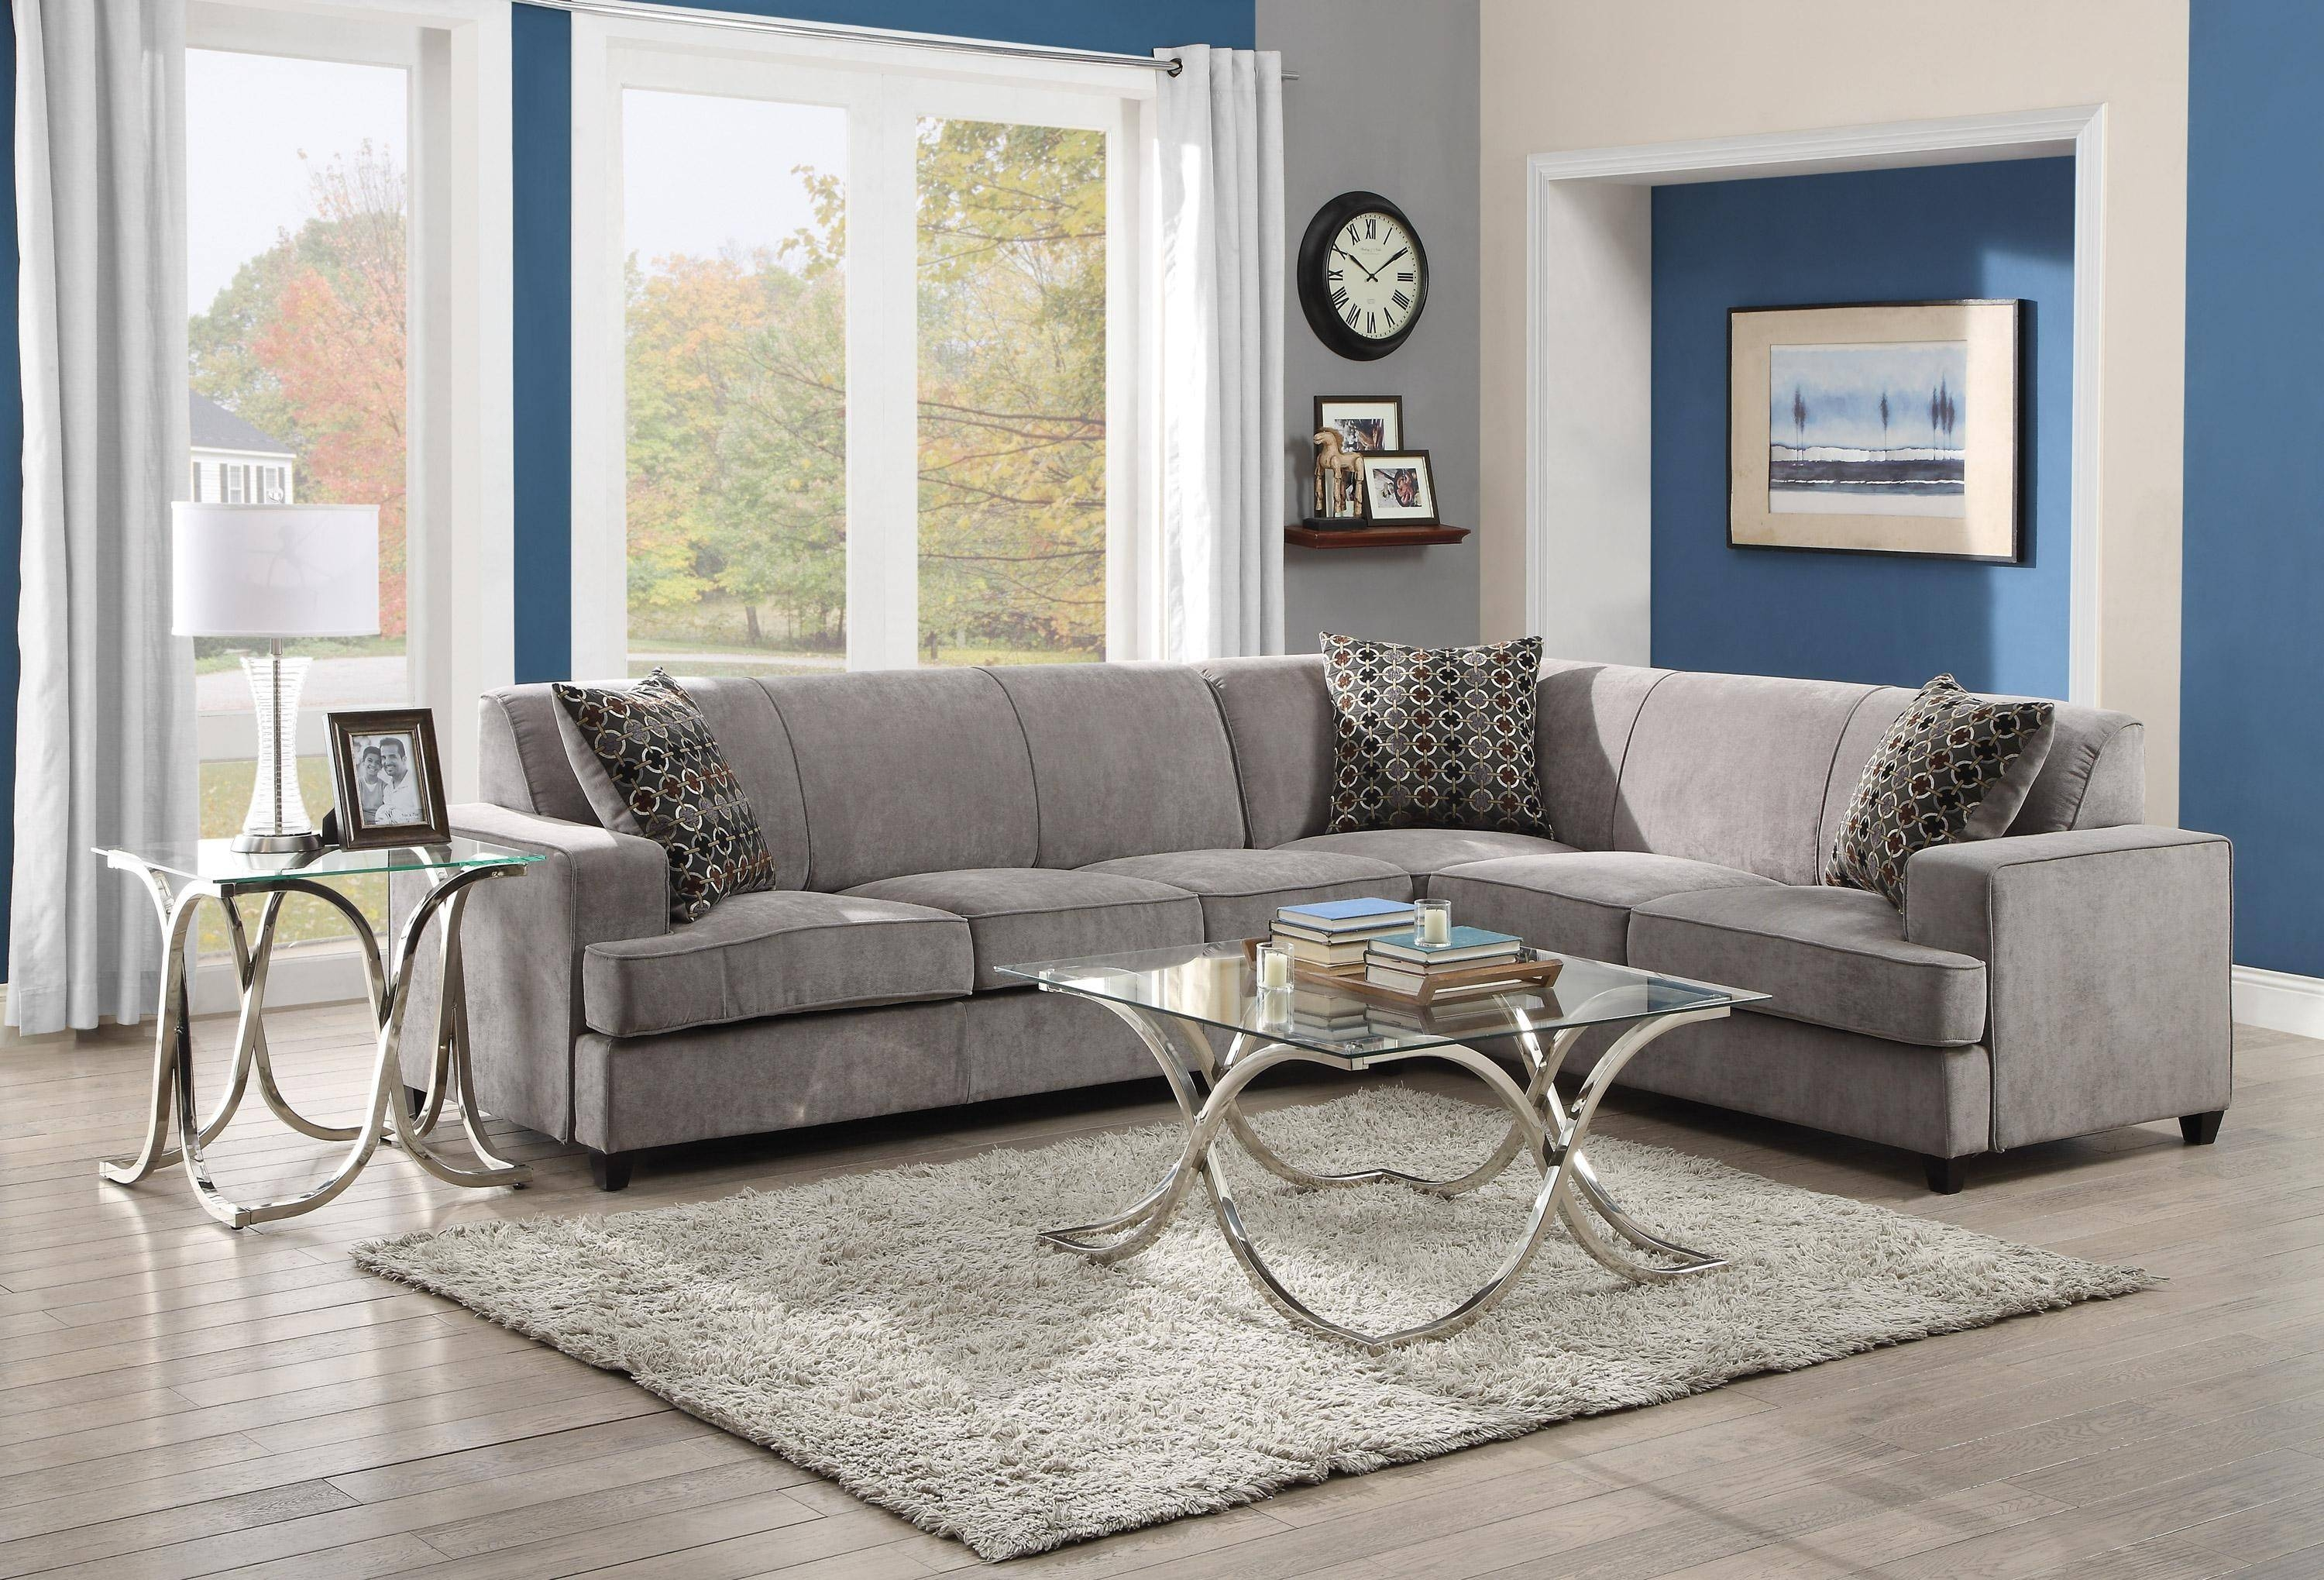 Furniture: Deep Sectional Sofa | Pottery Barn Sofa | Velvet throughout Room And Board Sectional Sofa (Image 4 of 25)